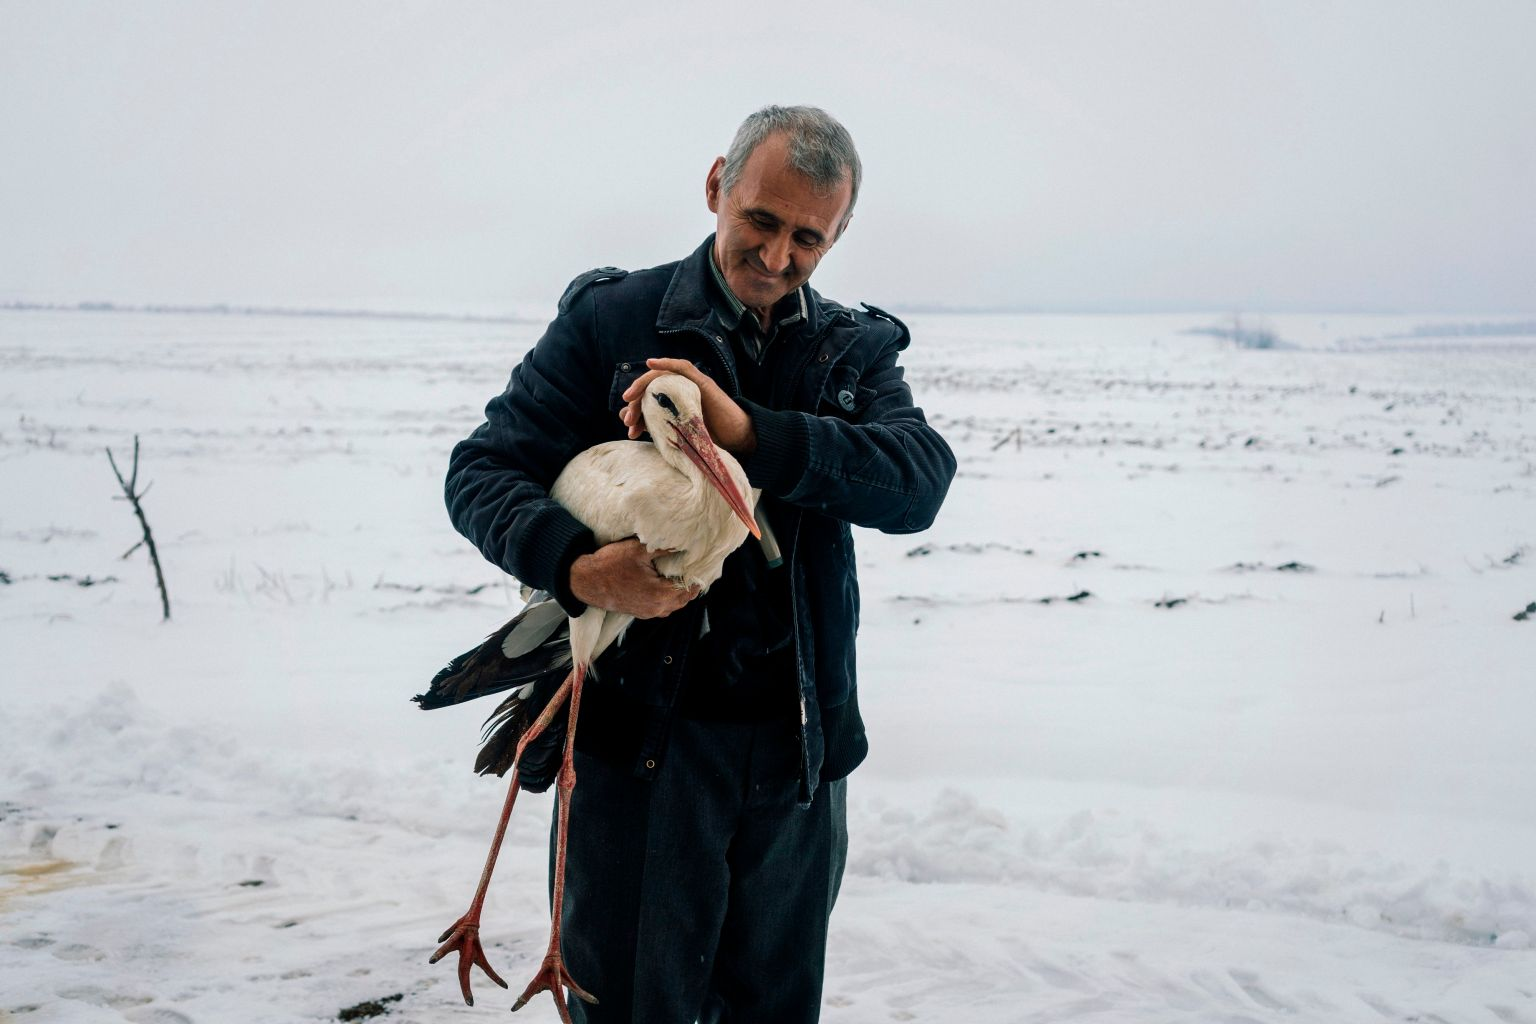 """TOPSHOT - Safet Halil, 53, holds a stork in his farm backyard in the village of Zaritsa on March 21, 2018.  """"I found five frozen storks near the village road the day before yesterday. I took them home, lit a stove to warm them and fed them fish,"""" Safet Halil, 53, from the village of Zaritsa told AFP on March 21, 2018. The return of winter weather in Bulgaria's northeast caught hundreds of migrating birds in an icetrap earlier this week, prompting a surprising response from many locals in the areas around the town of Dulovo. / AFP PHOTO / Dimitar DILKOFF        (Photo credit should read DIMITAR DILKOFF/AFP/Getty Images)"""